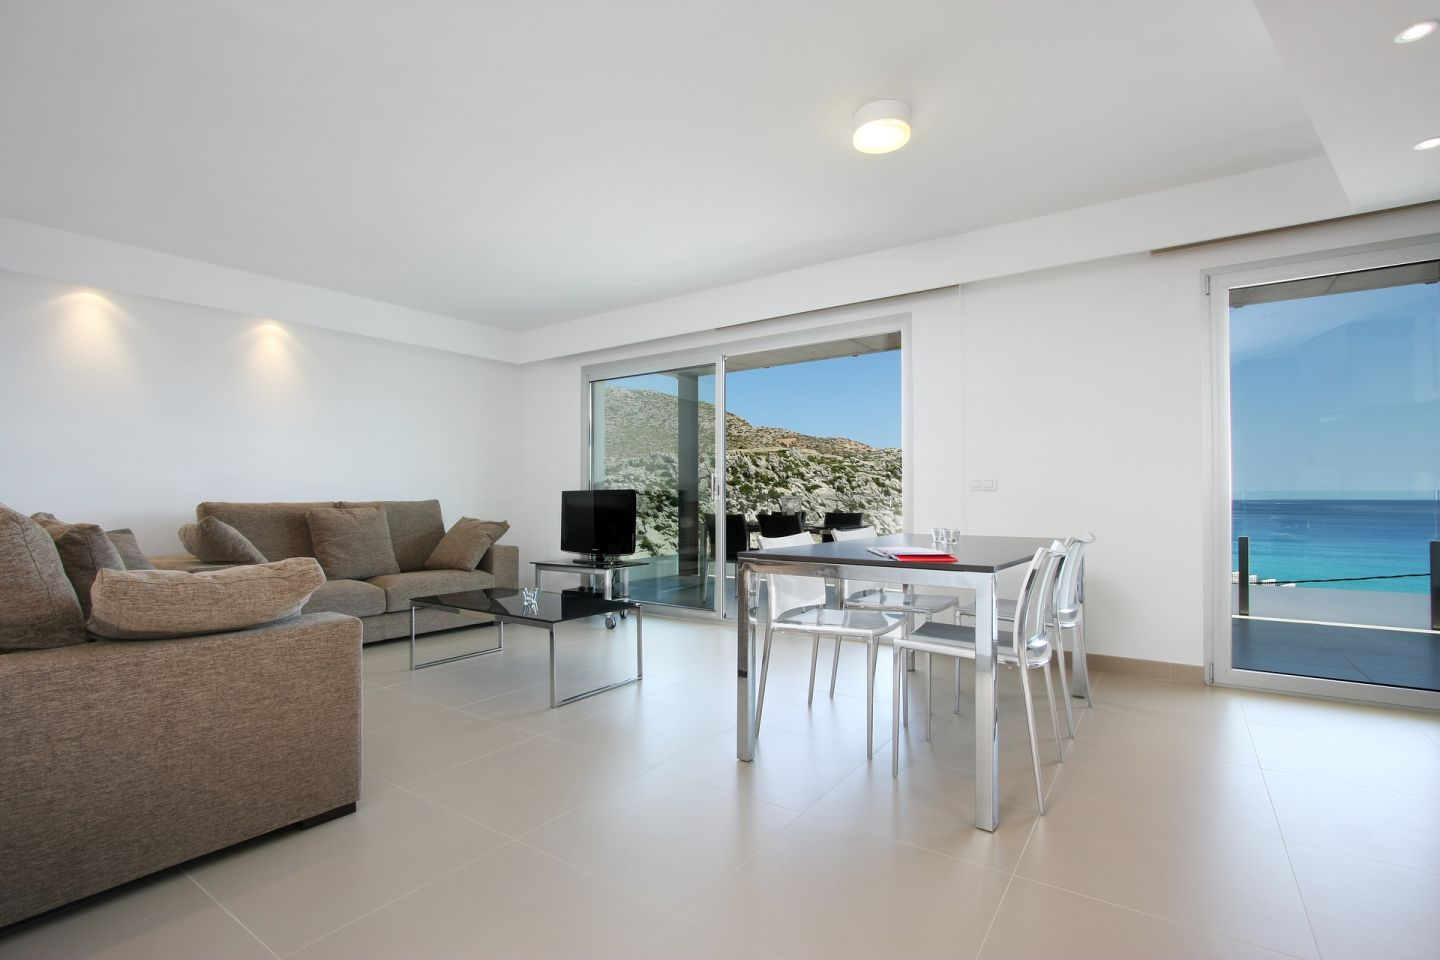 2 Bed Apartment for sale in Cala San Vicente 1